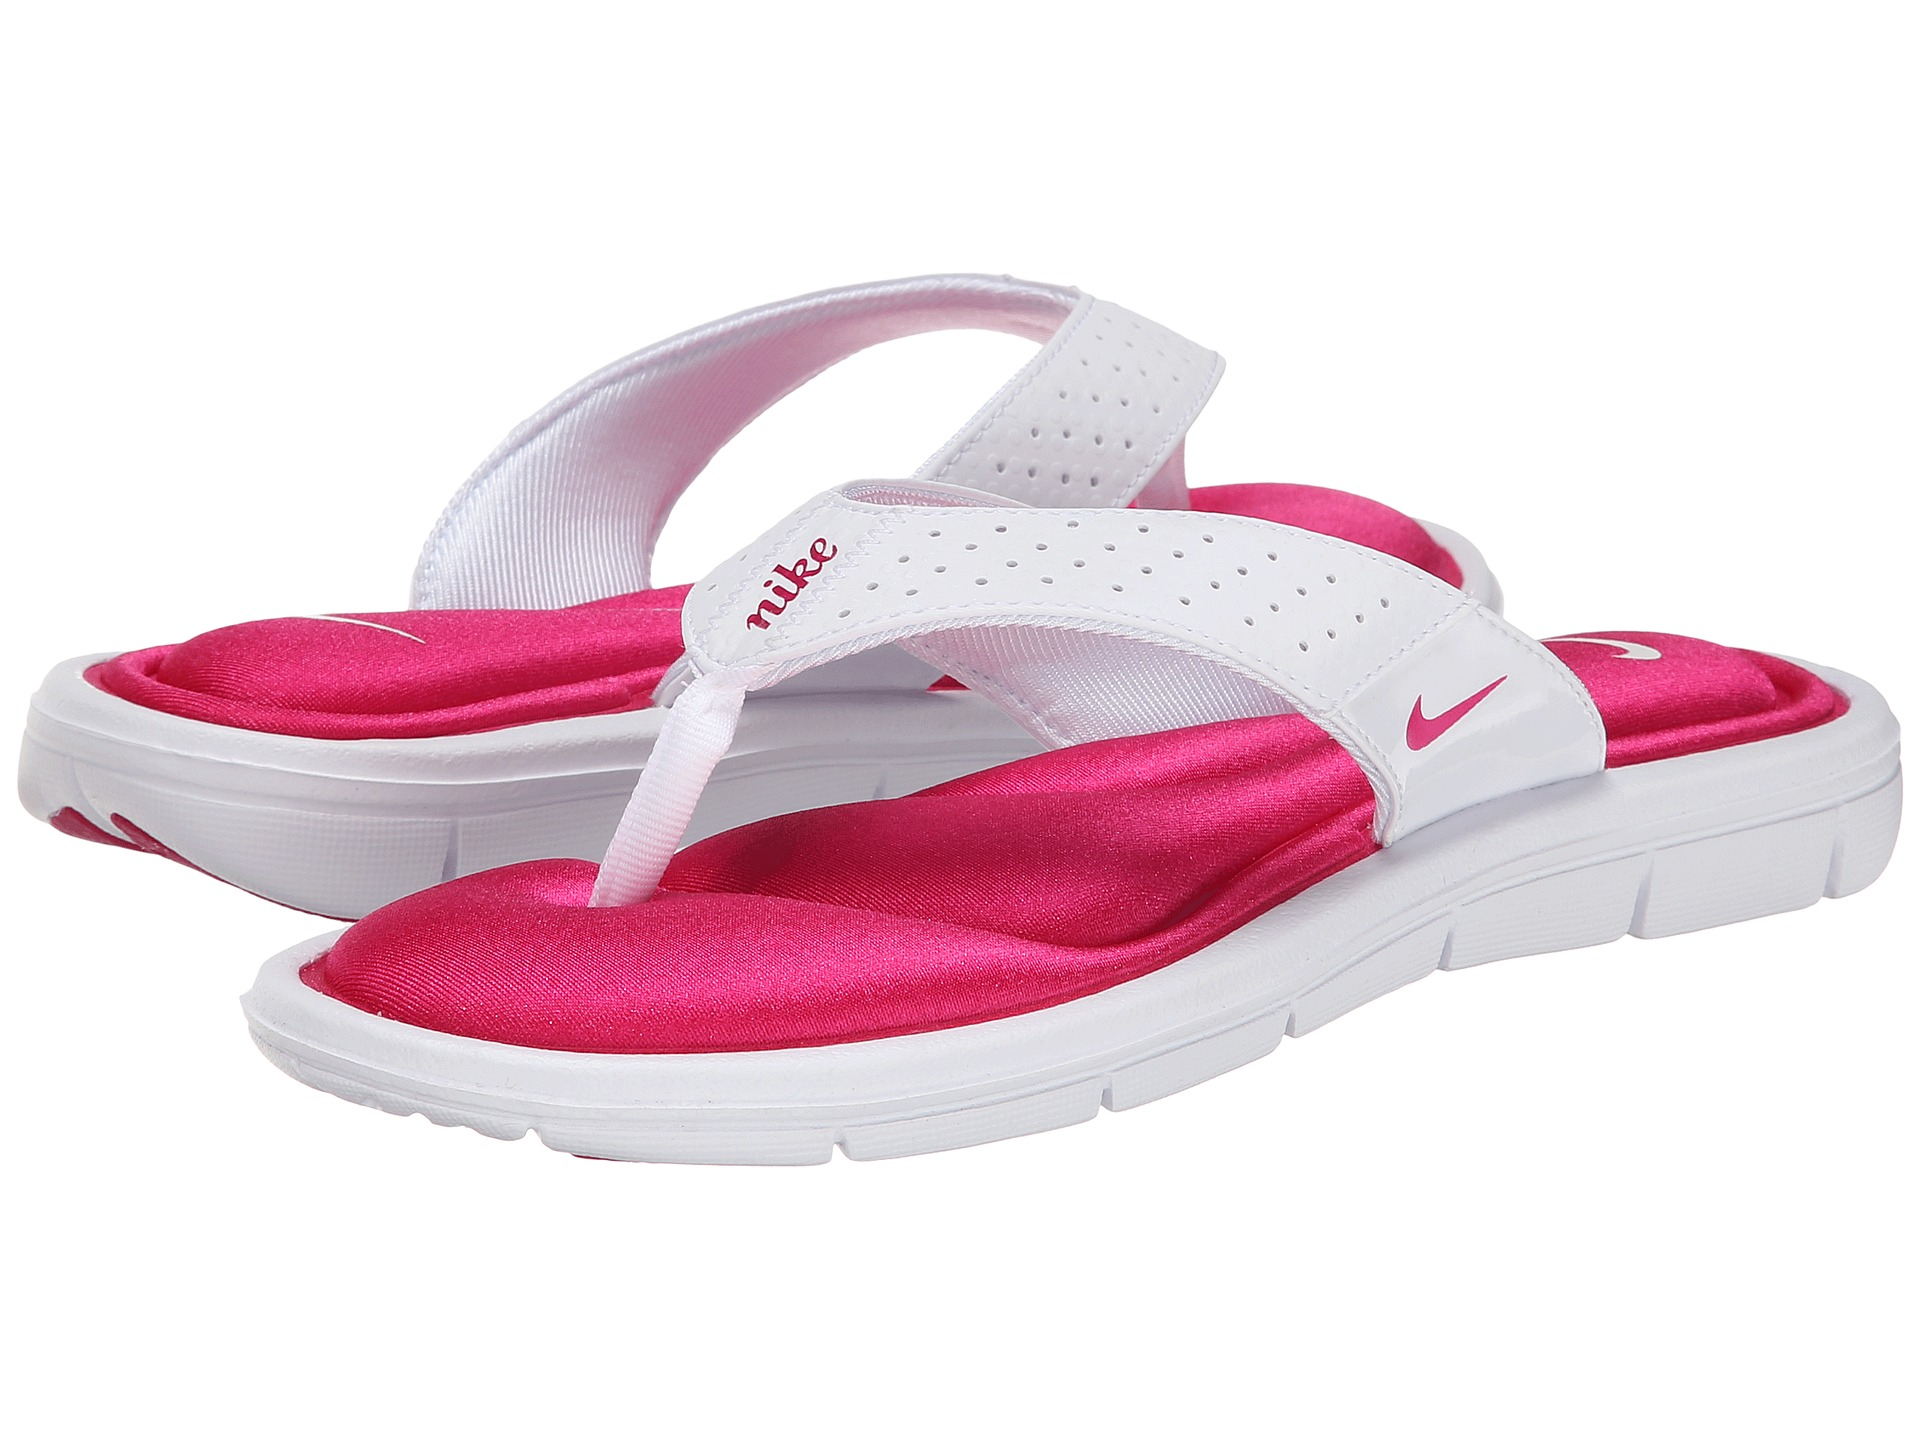 australia ladies nike slip thongs thong on ebay tjoptoa shoes comforter itm comfort womens sandals